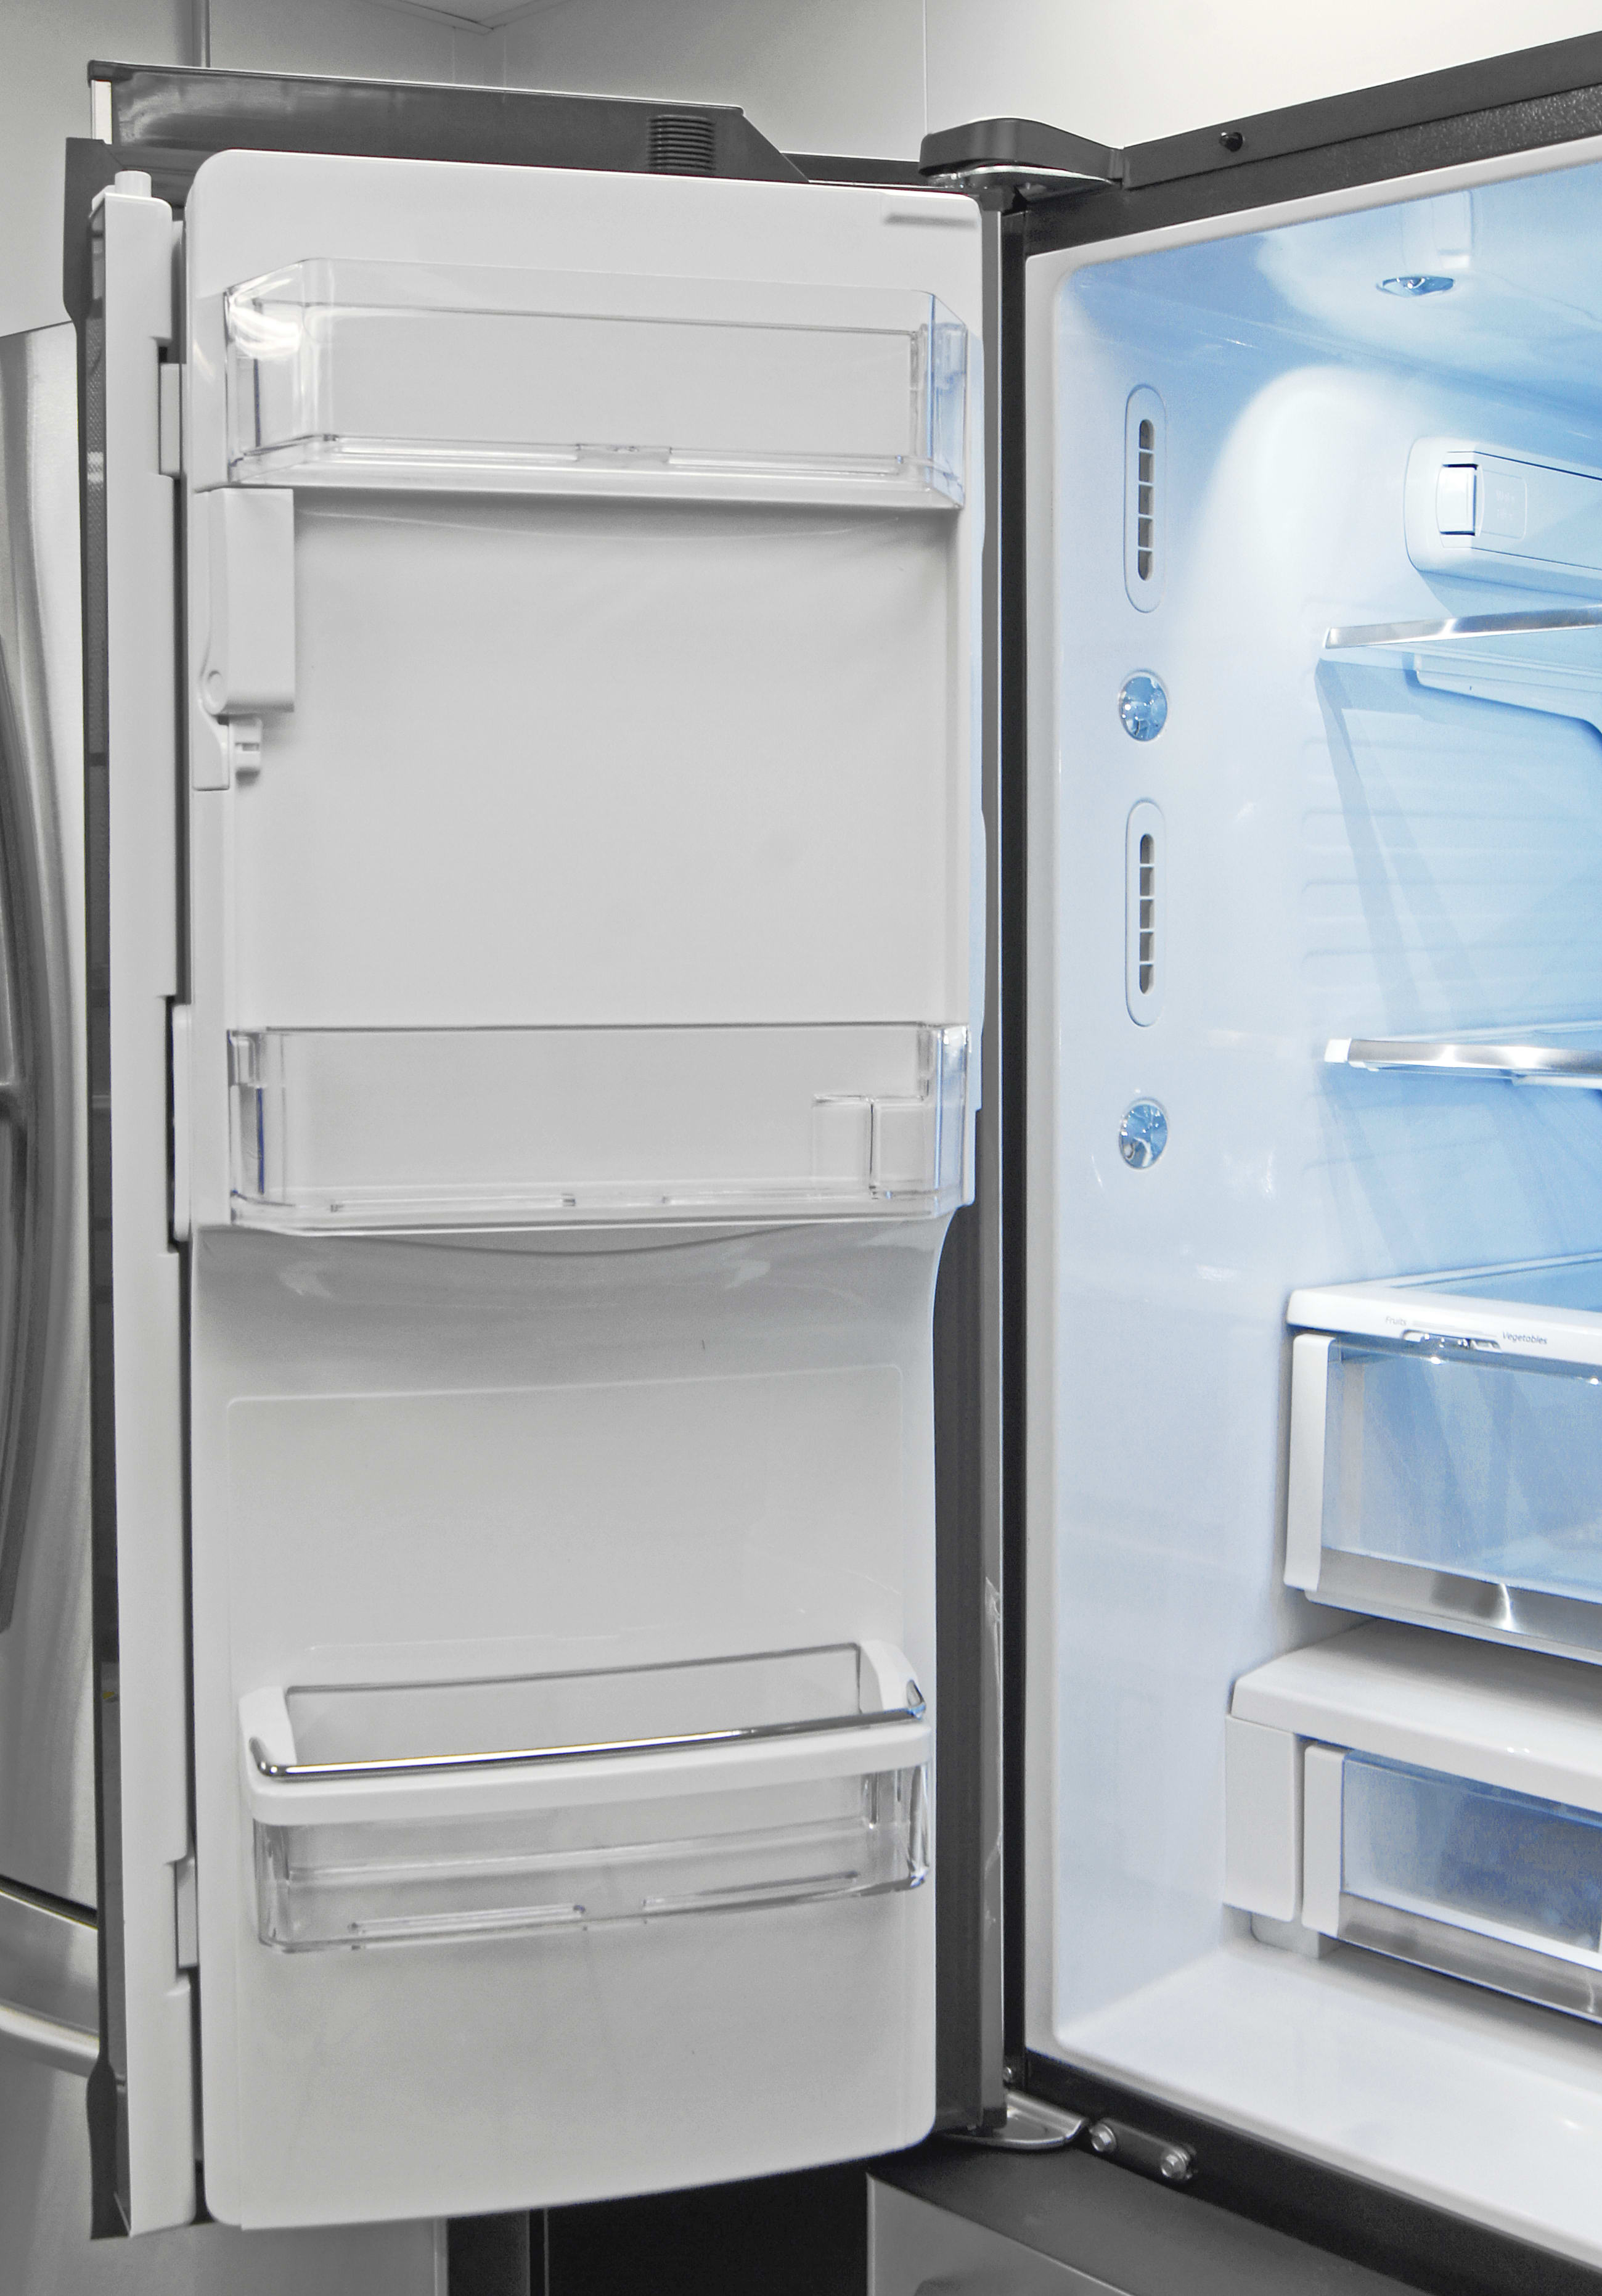 The GE Cafe CFE28TSHSS's door-mounted icemaker necessitate shallow shelves on the left.